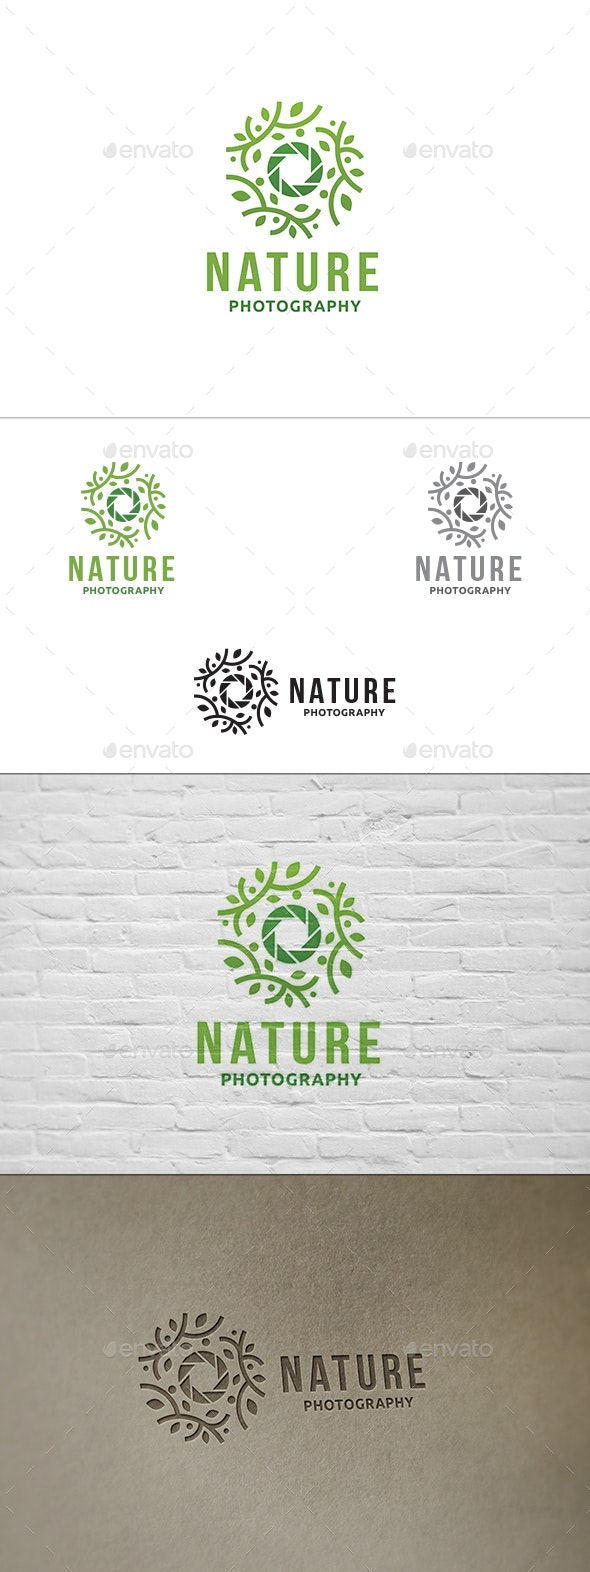 Nature Photography Logo - Nature Logo Templates